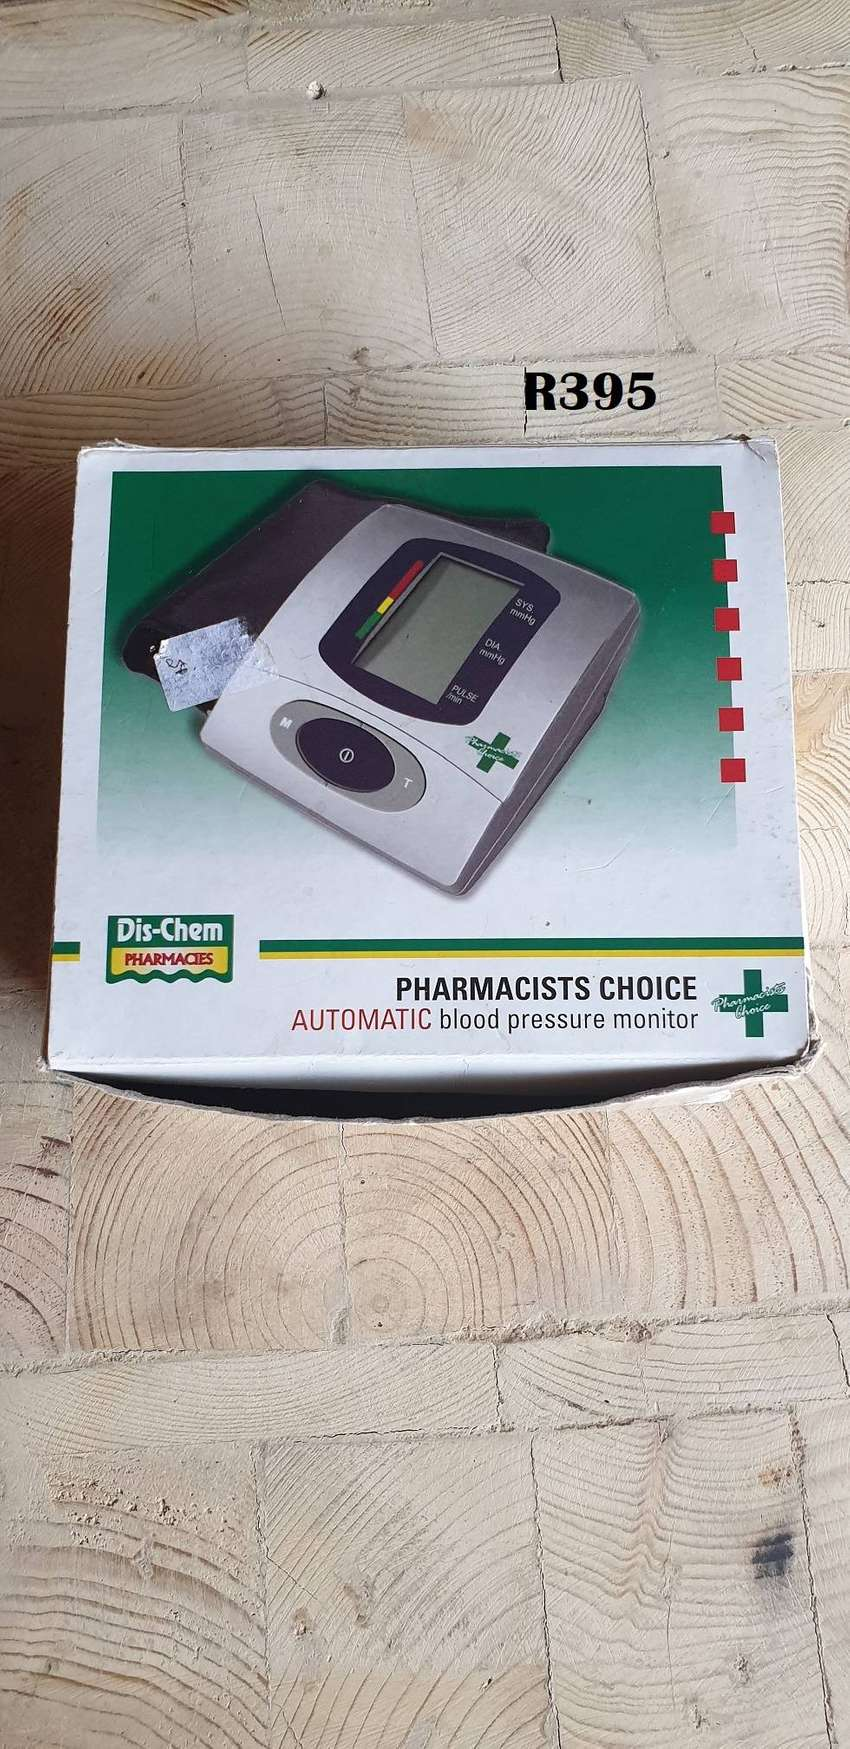 Pharmacists Choice Automatic Blood Pressure Monitor 0